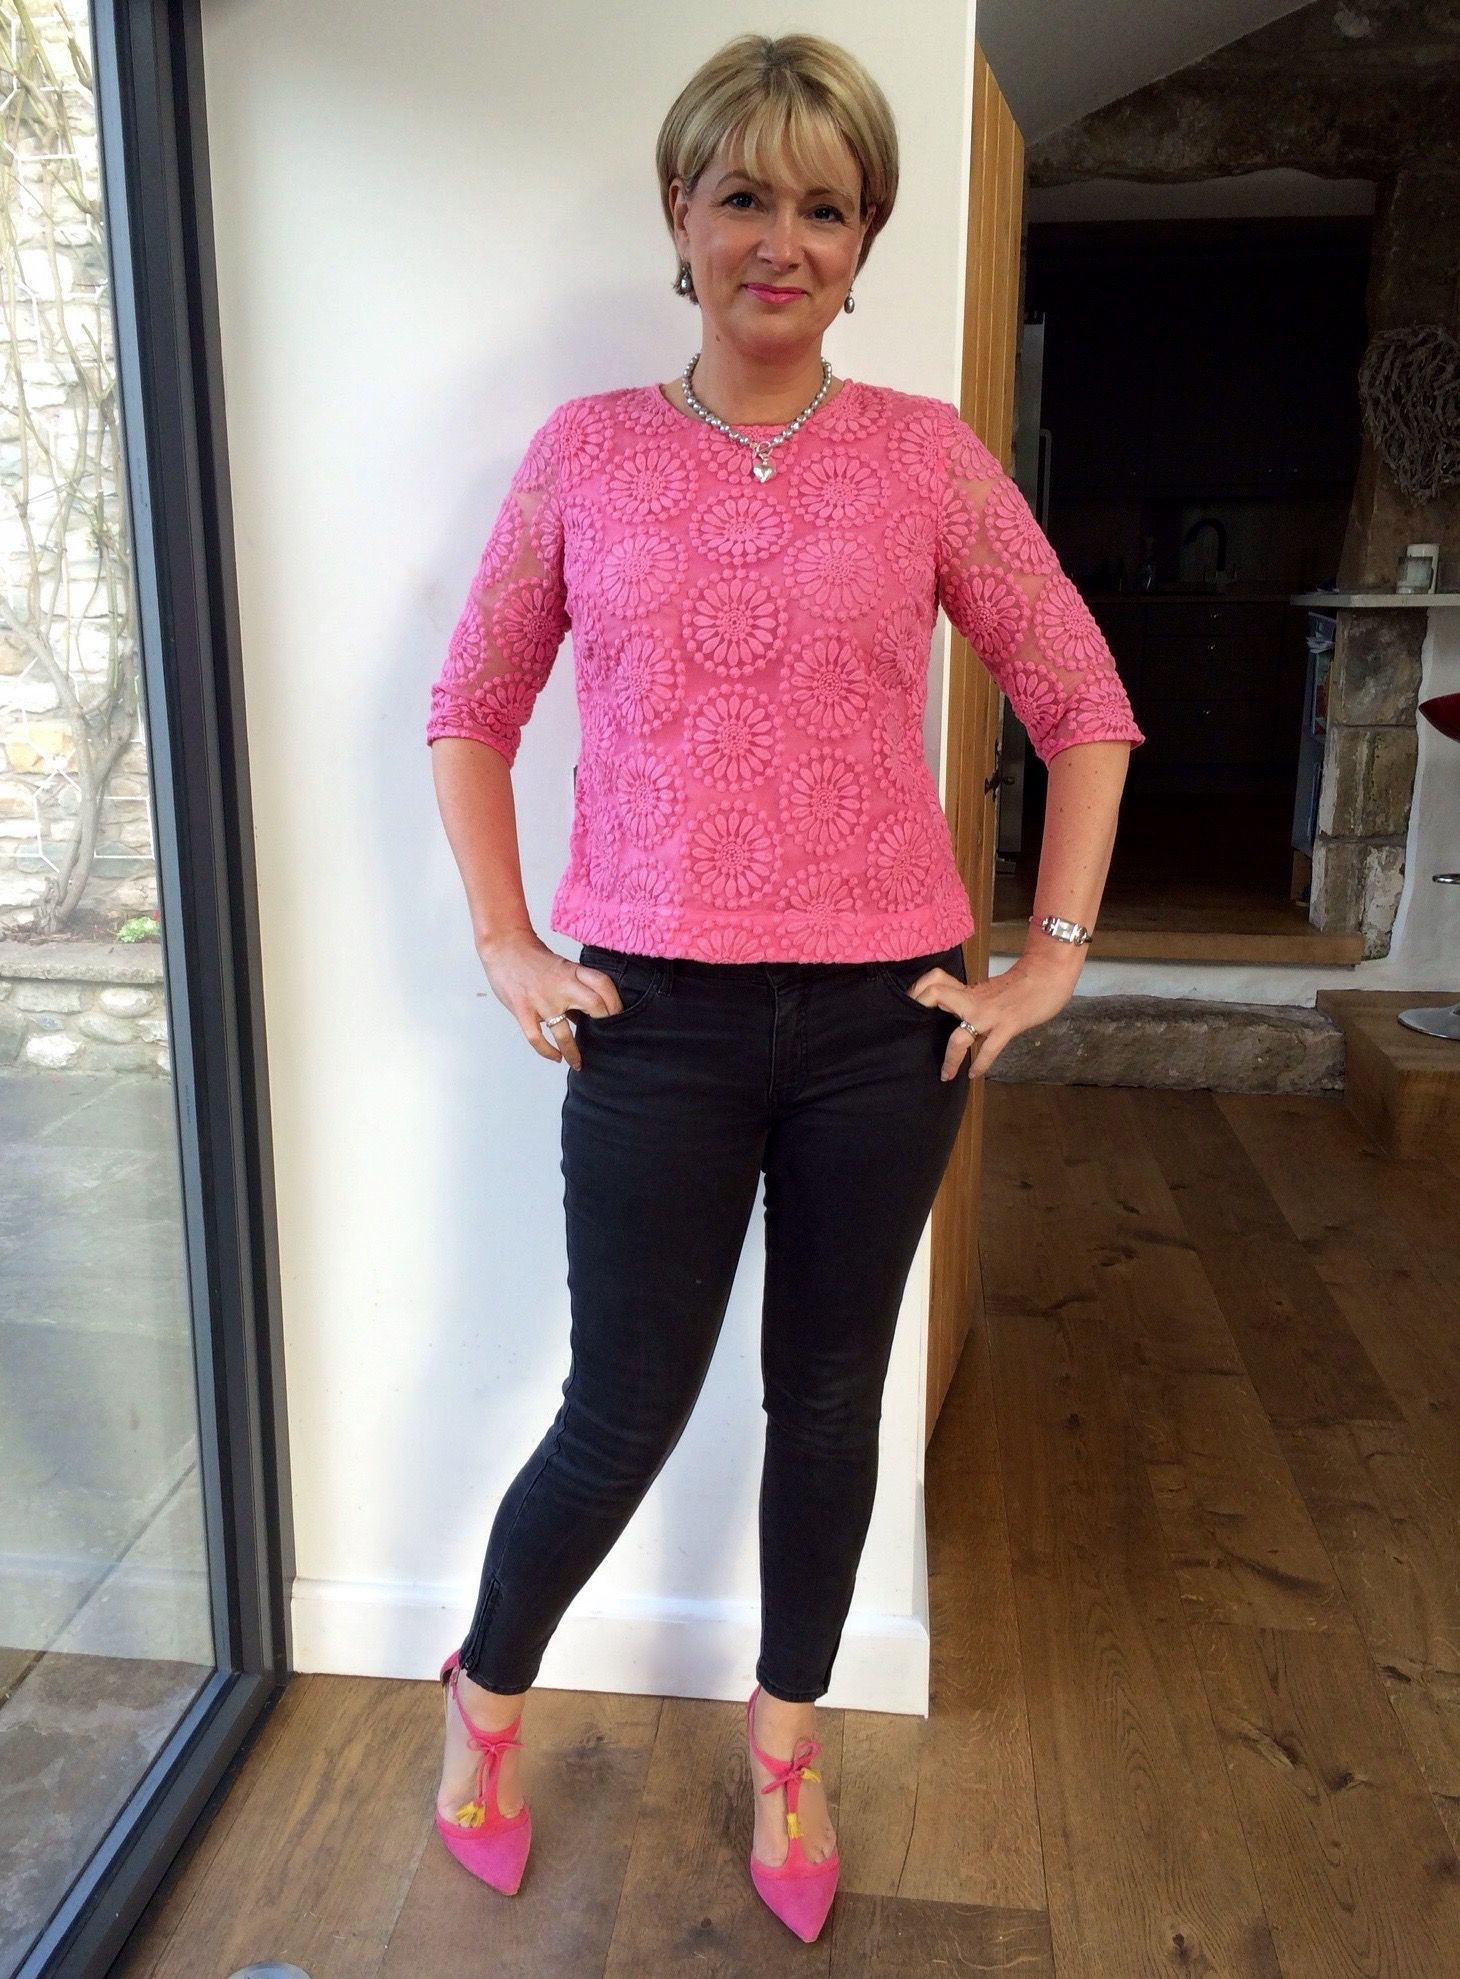 A Top Shop and IDLF at Uniqlo review – Midlifechic